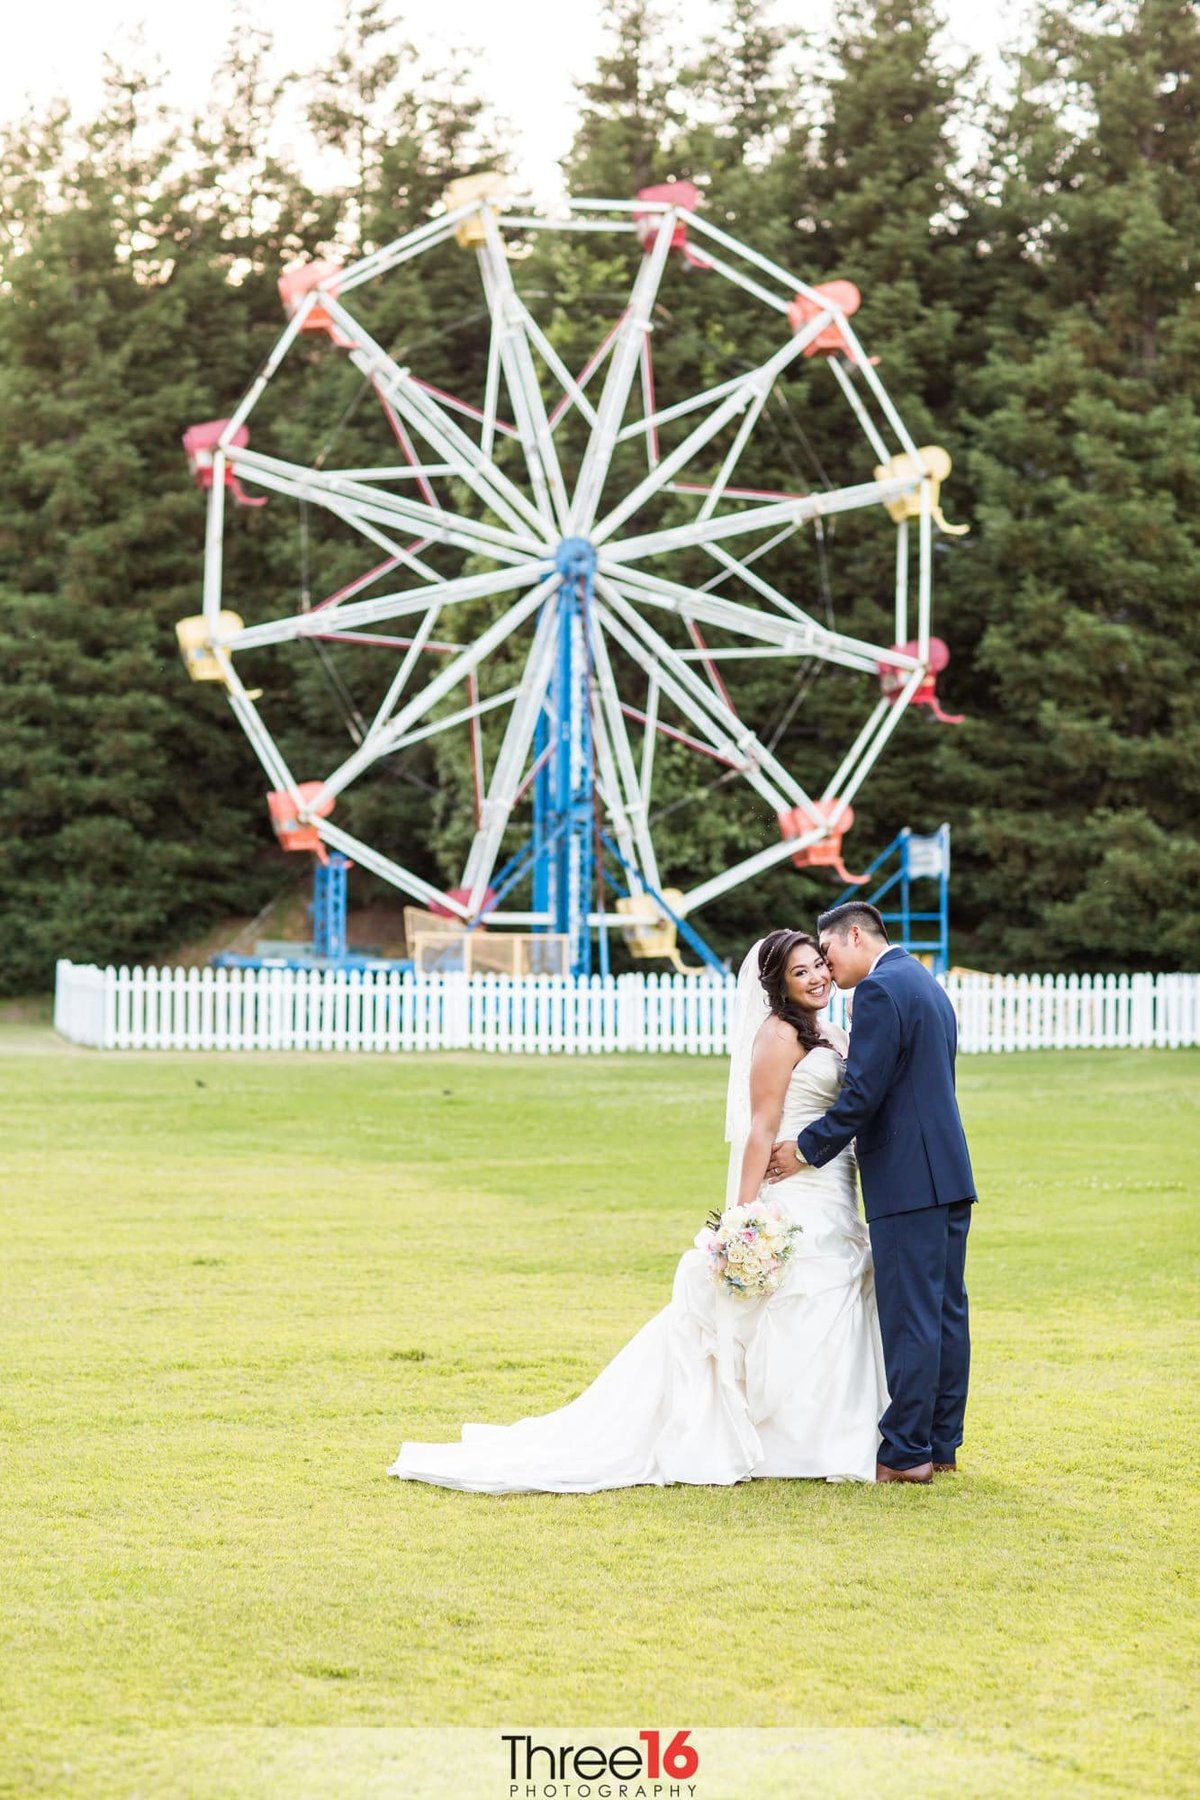 Intimate moment between Bride and Groom in front of the Calamigos Ranch Ferris Wheel